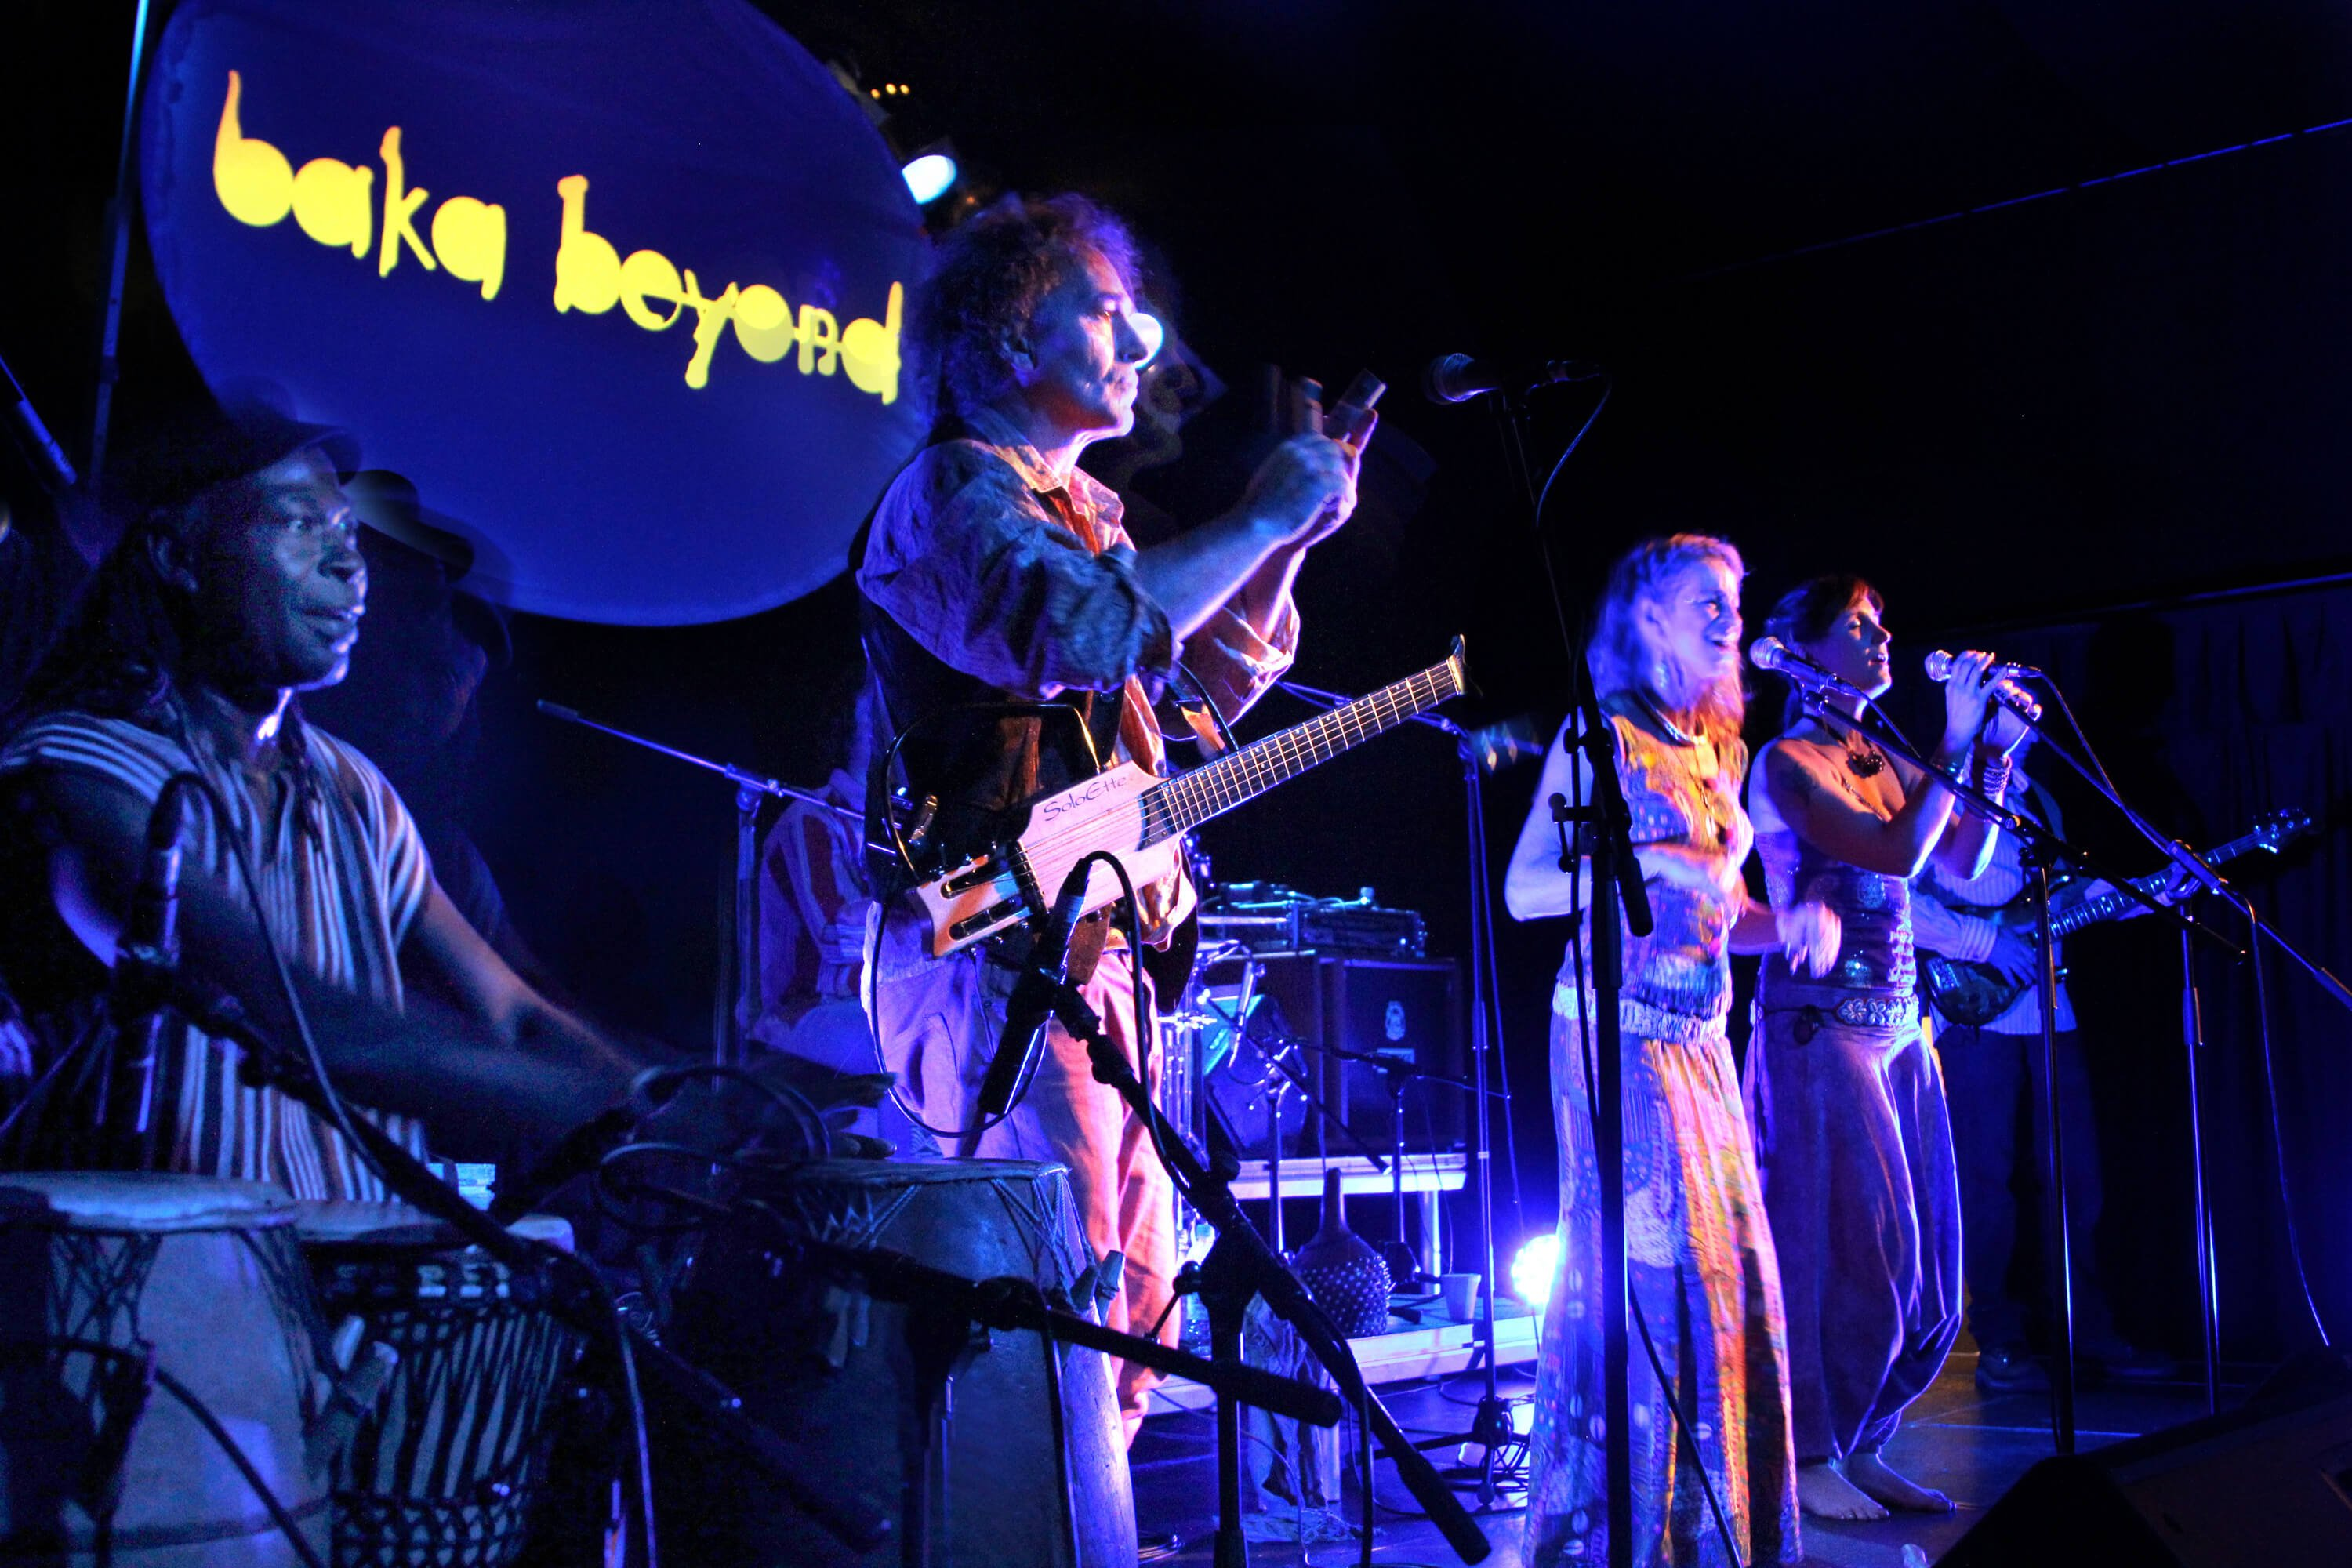 Baka Beyond 25th Anniversary Tour